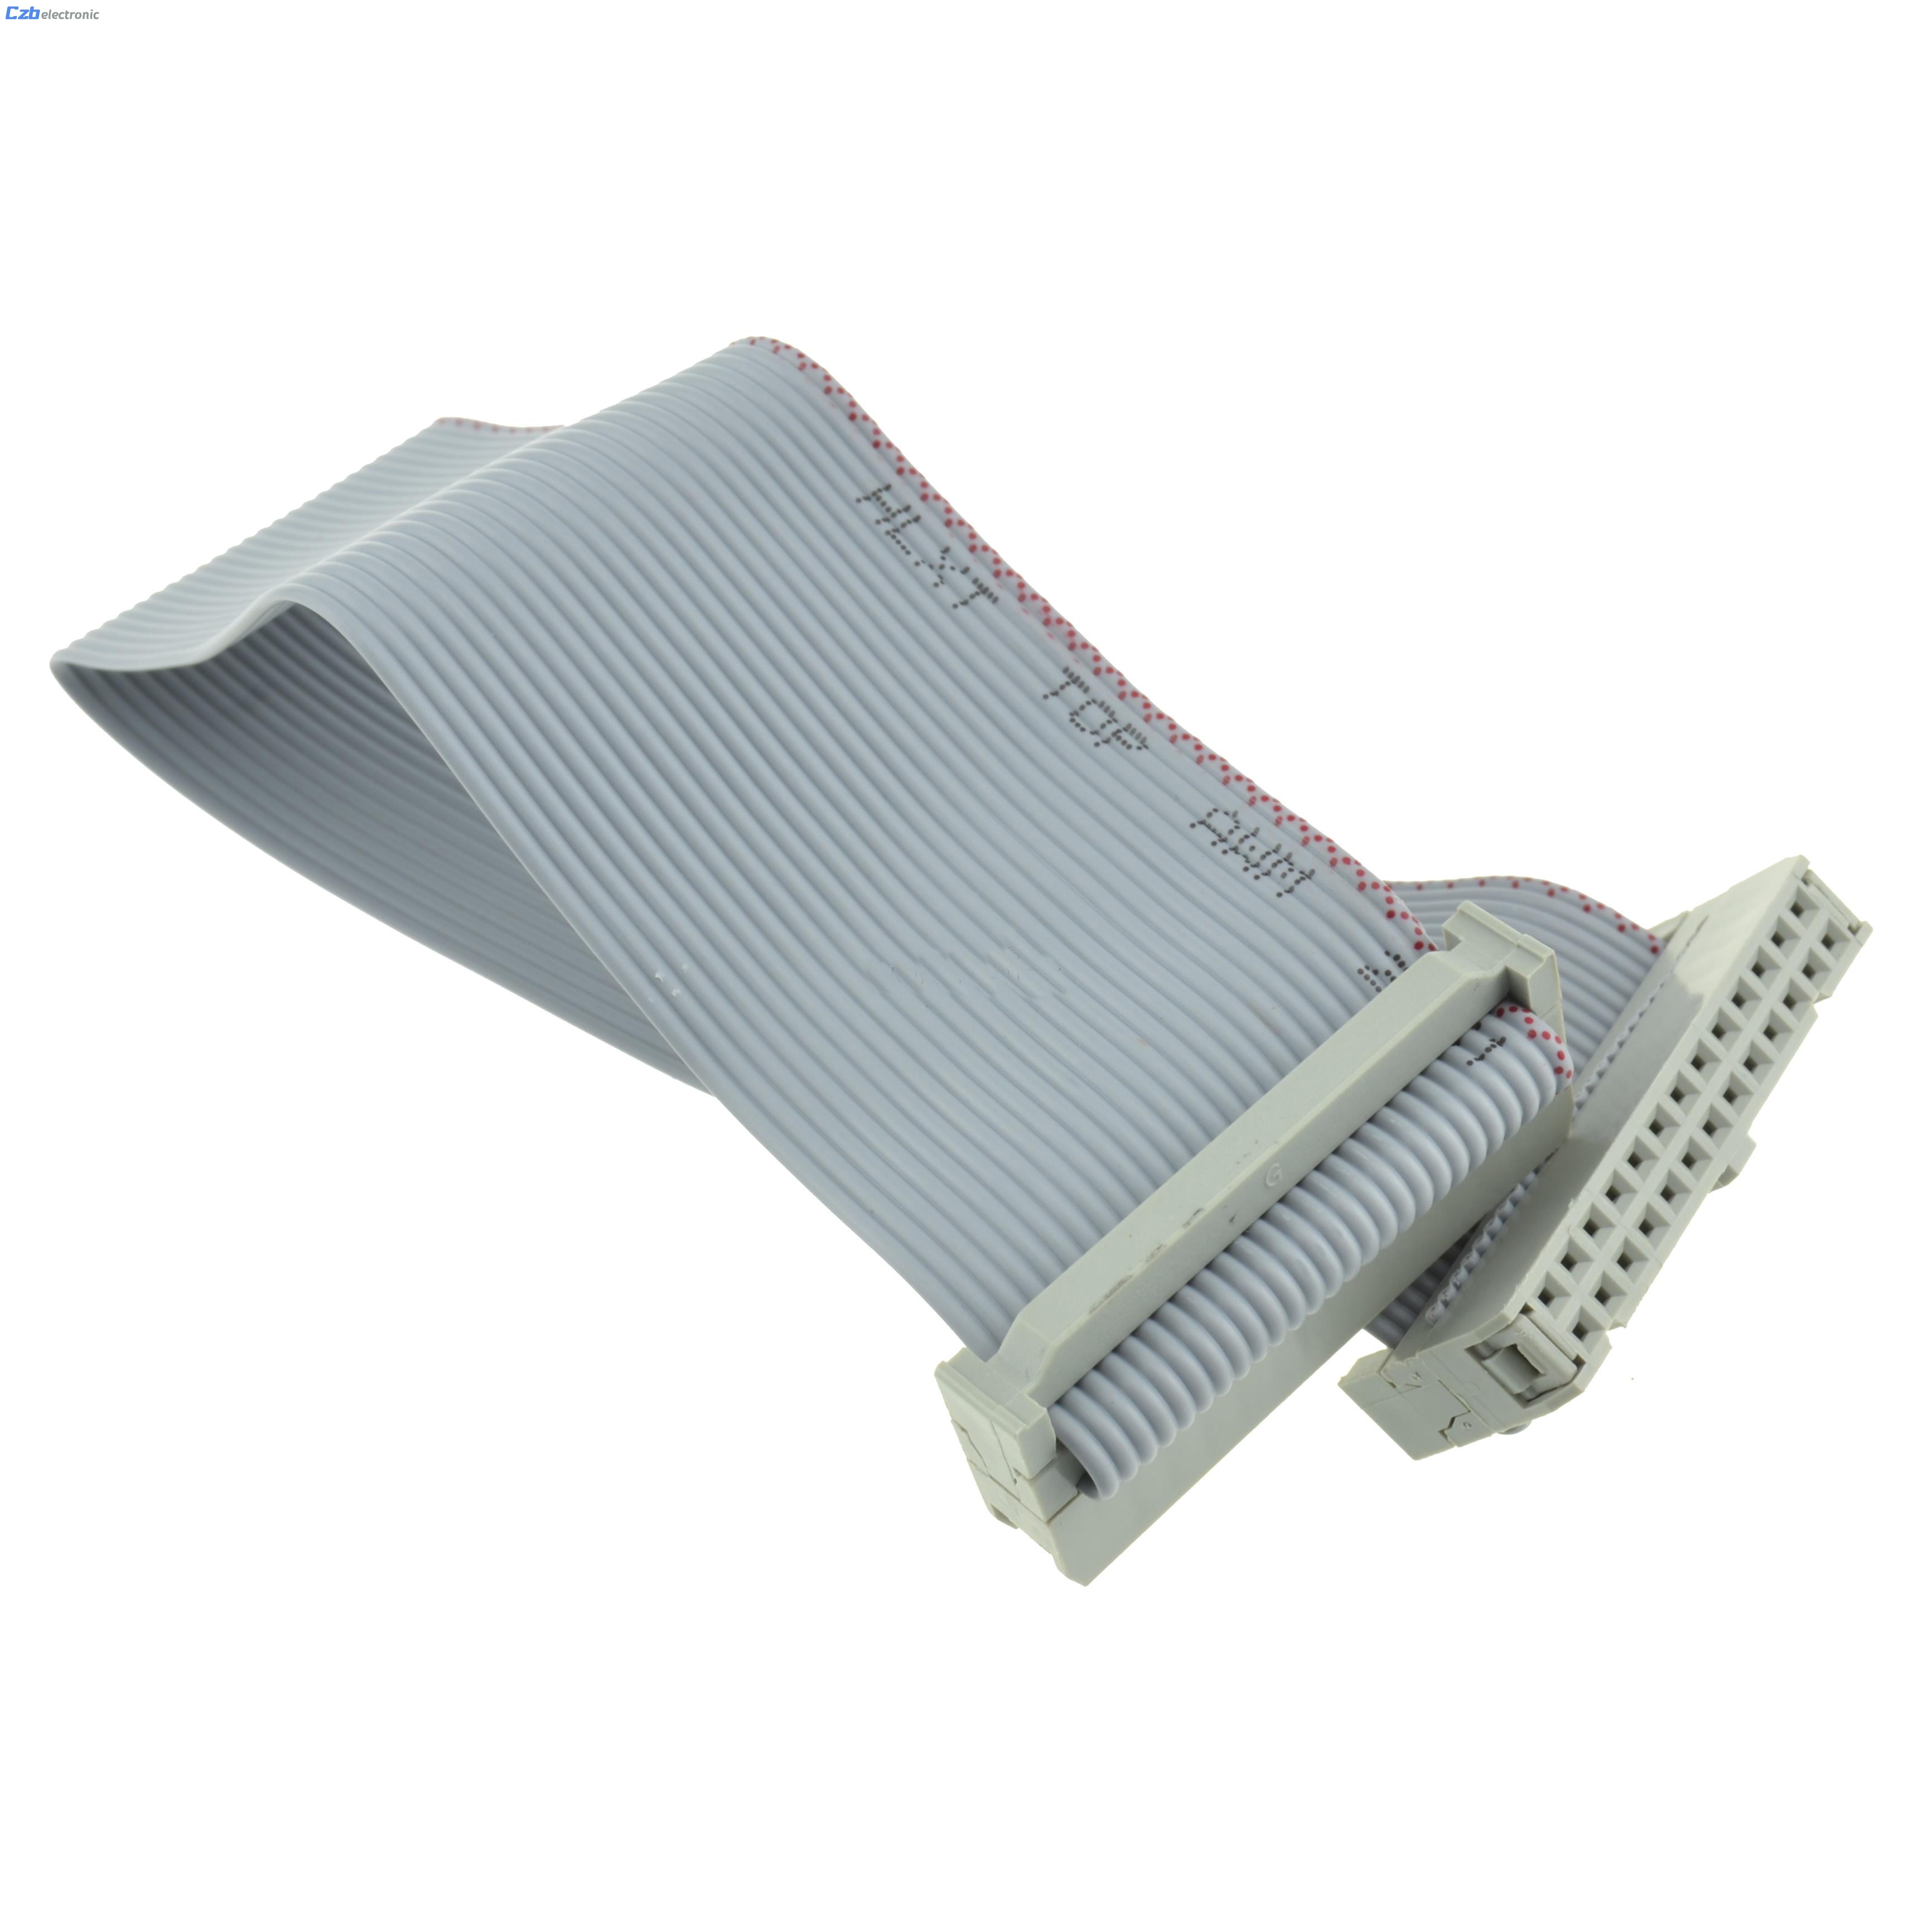 Flat Ribbon Cable Wires 26 Pin 2 54mm Picth 200mm For Raspberry Pi GPIO  Header